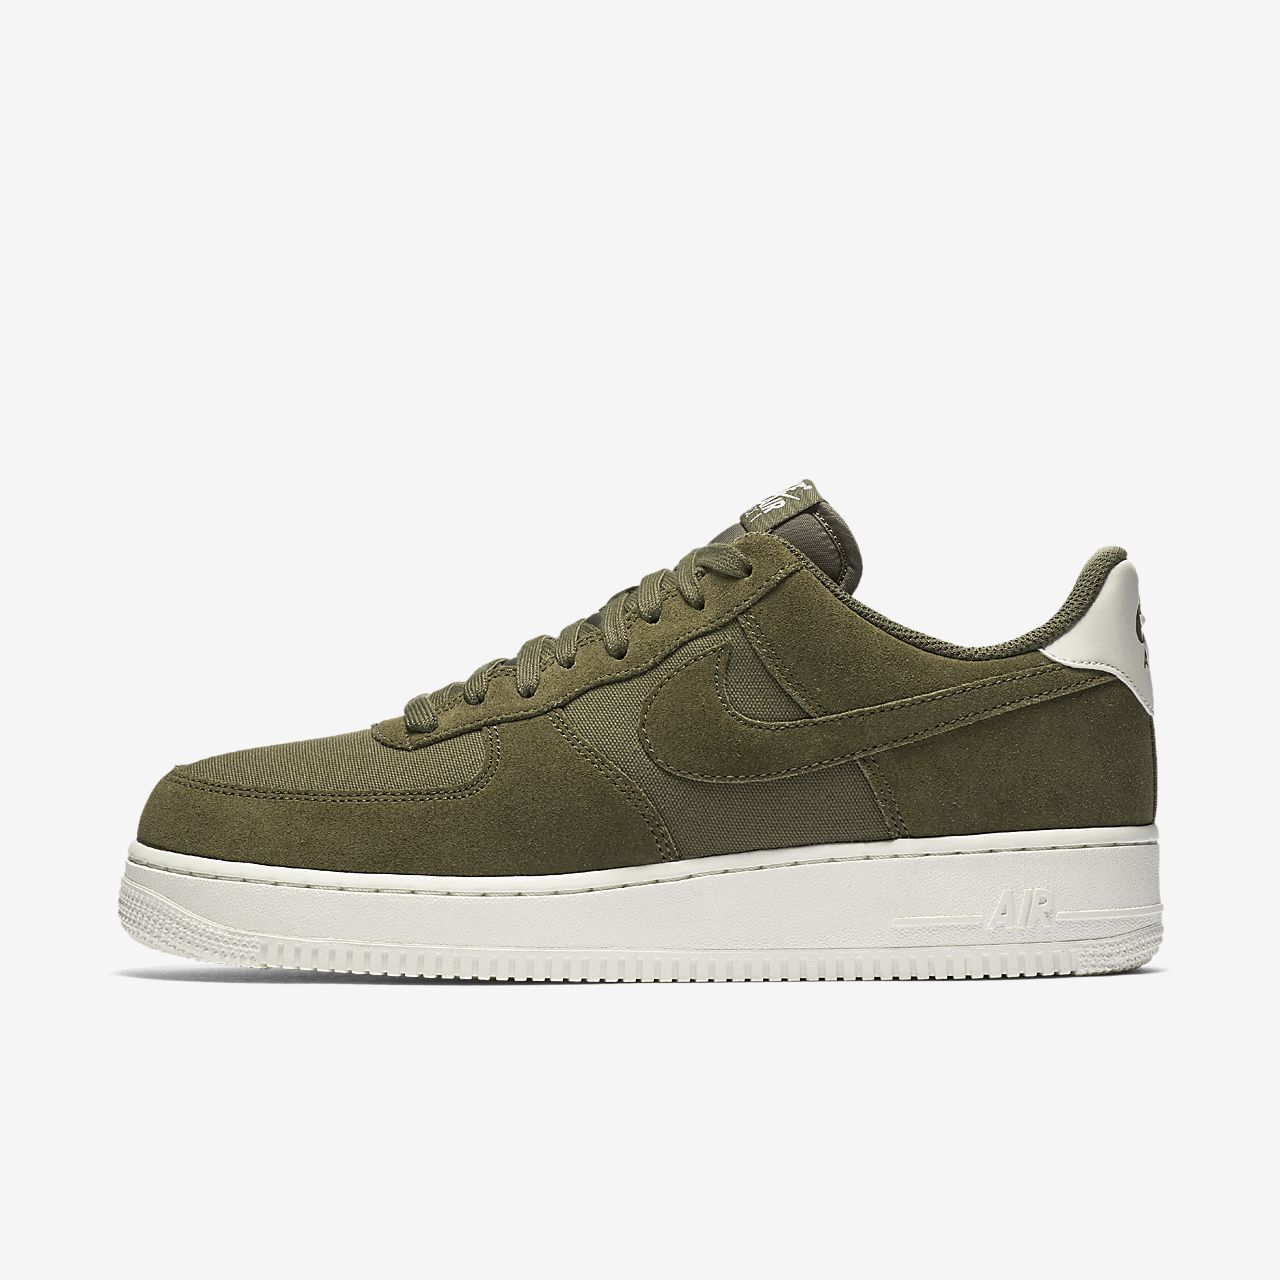 Suede Air Air One Nike One Force Force tQdxsBhrCo